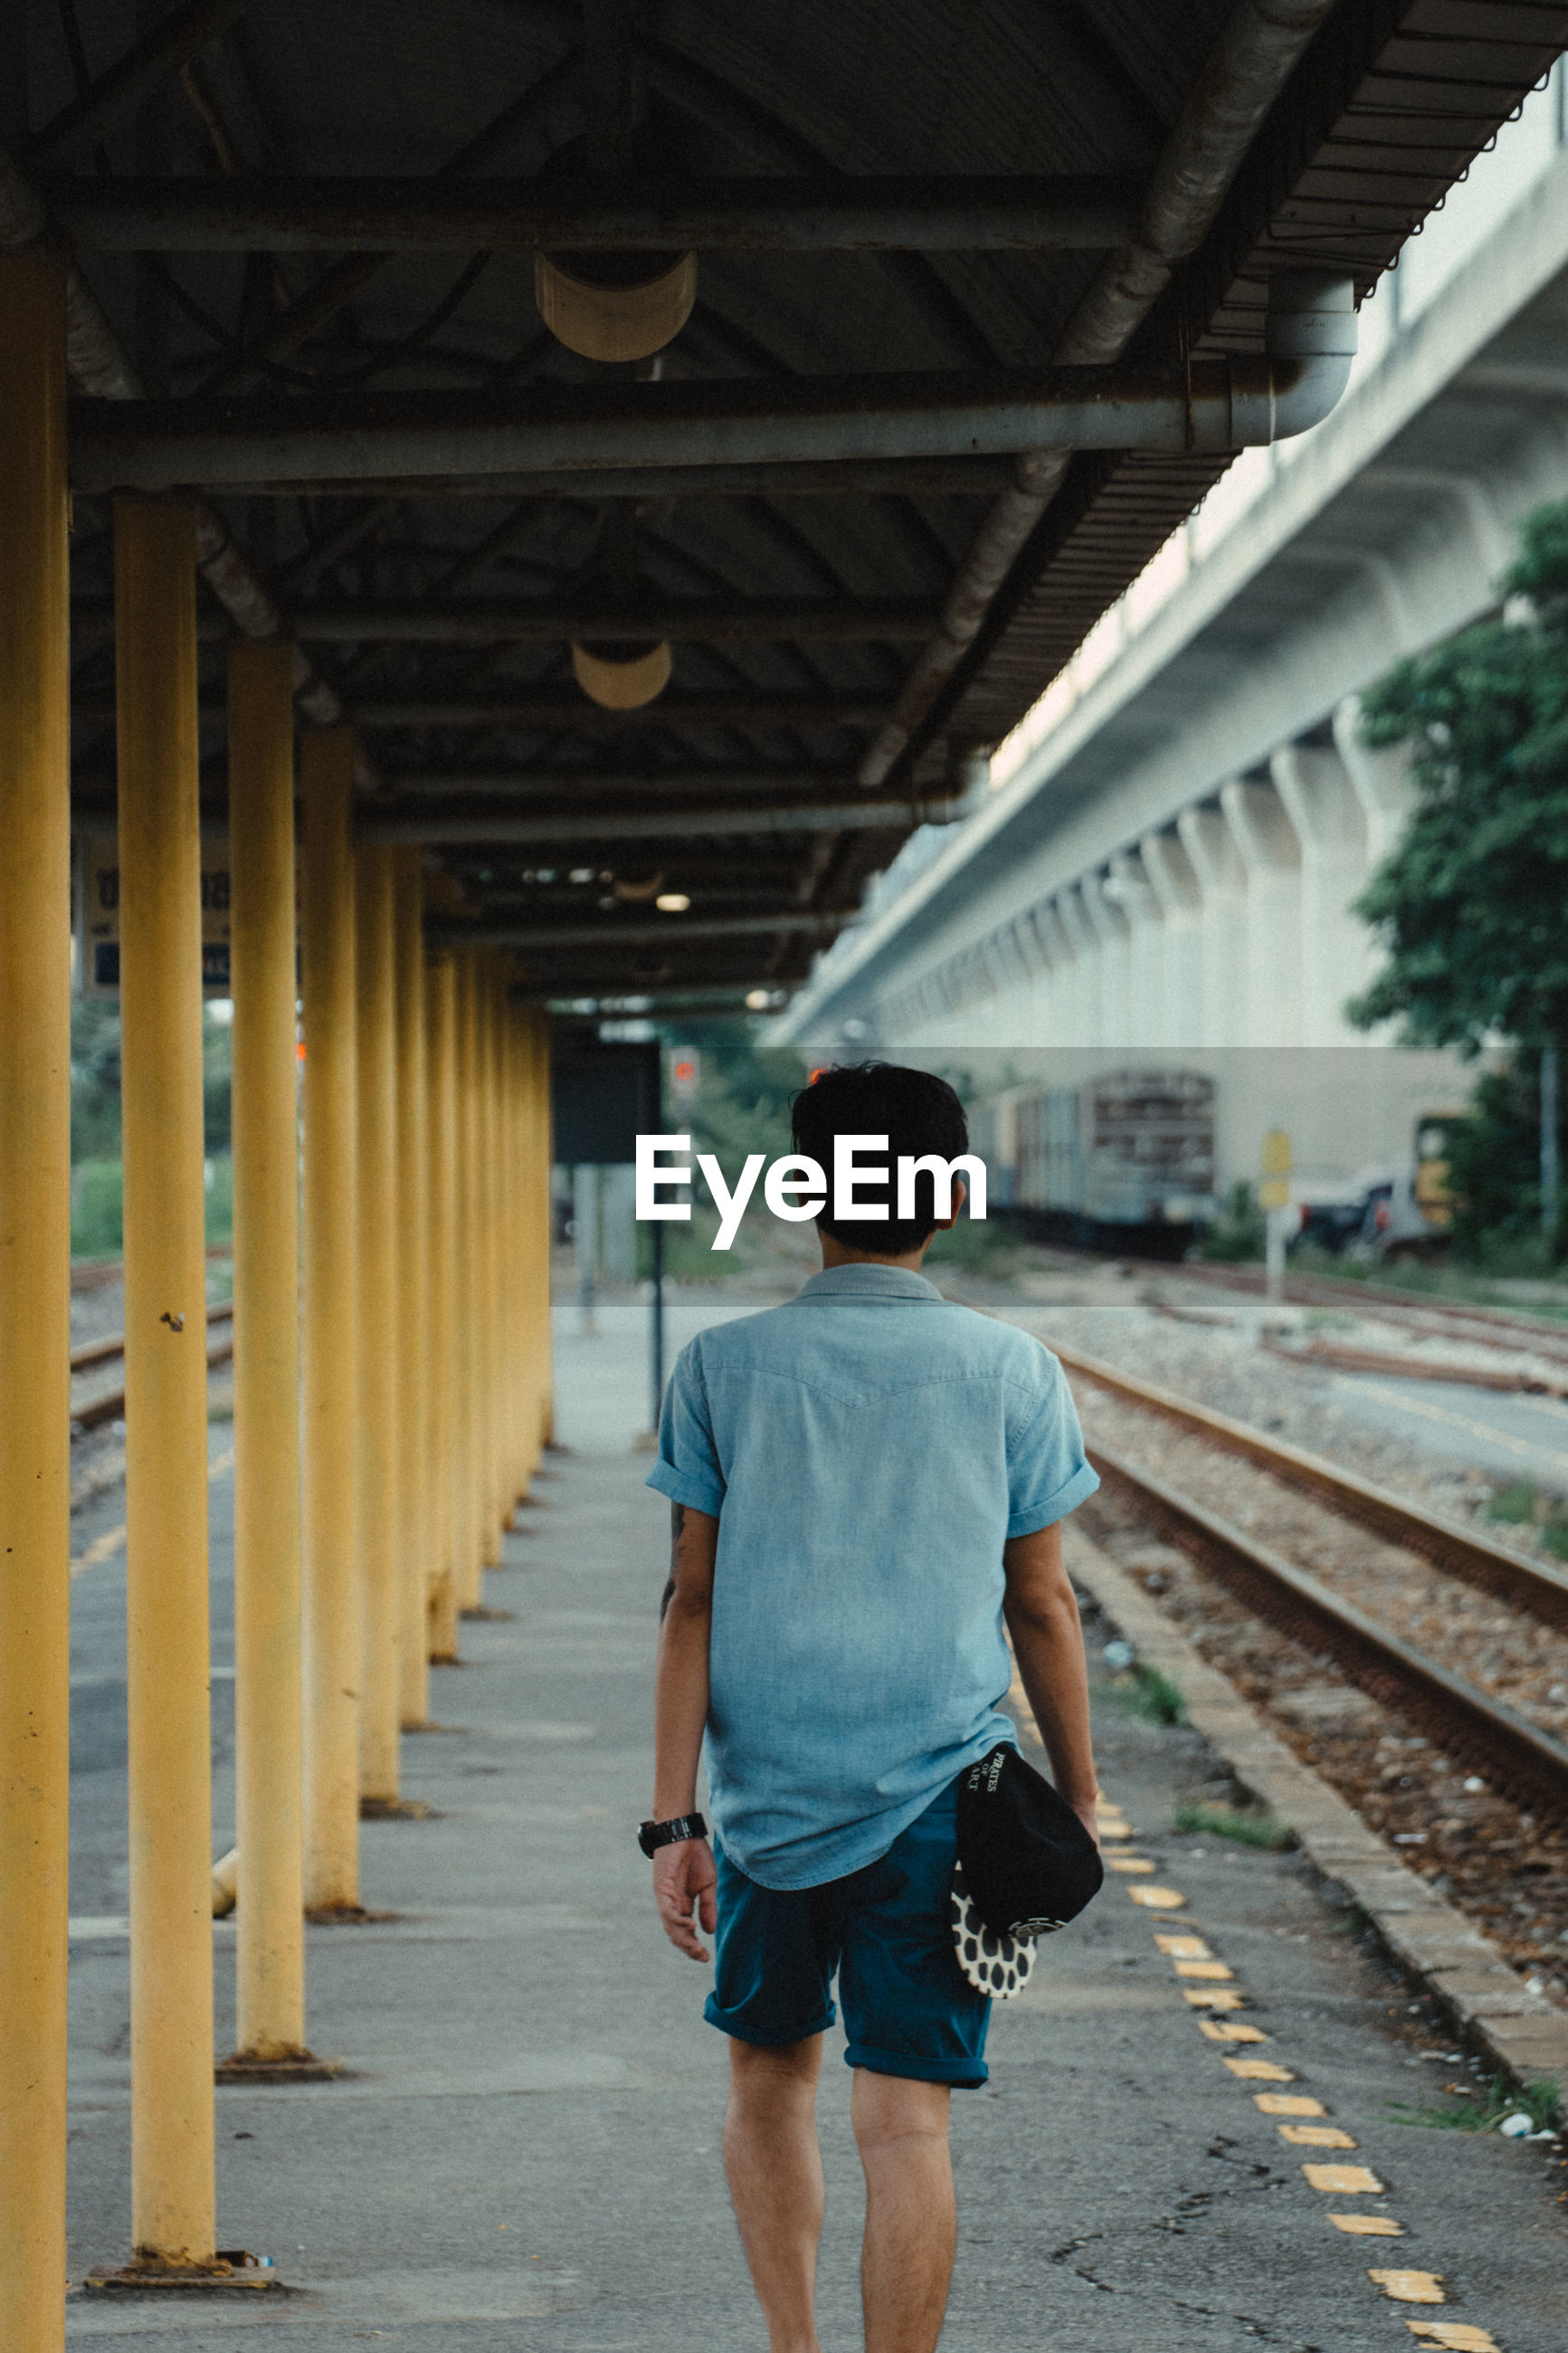 rear view, architecture, one person, transportation, built structure, real people, casual clothing, men, the way forward, direction, bridge, rail transportation, day, bridge - man made structure, railroad track, lifestyles, walking, track, diminishing perspective, outdoors, architectural column, shorts